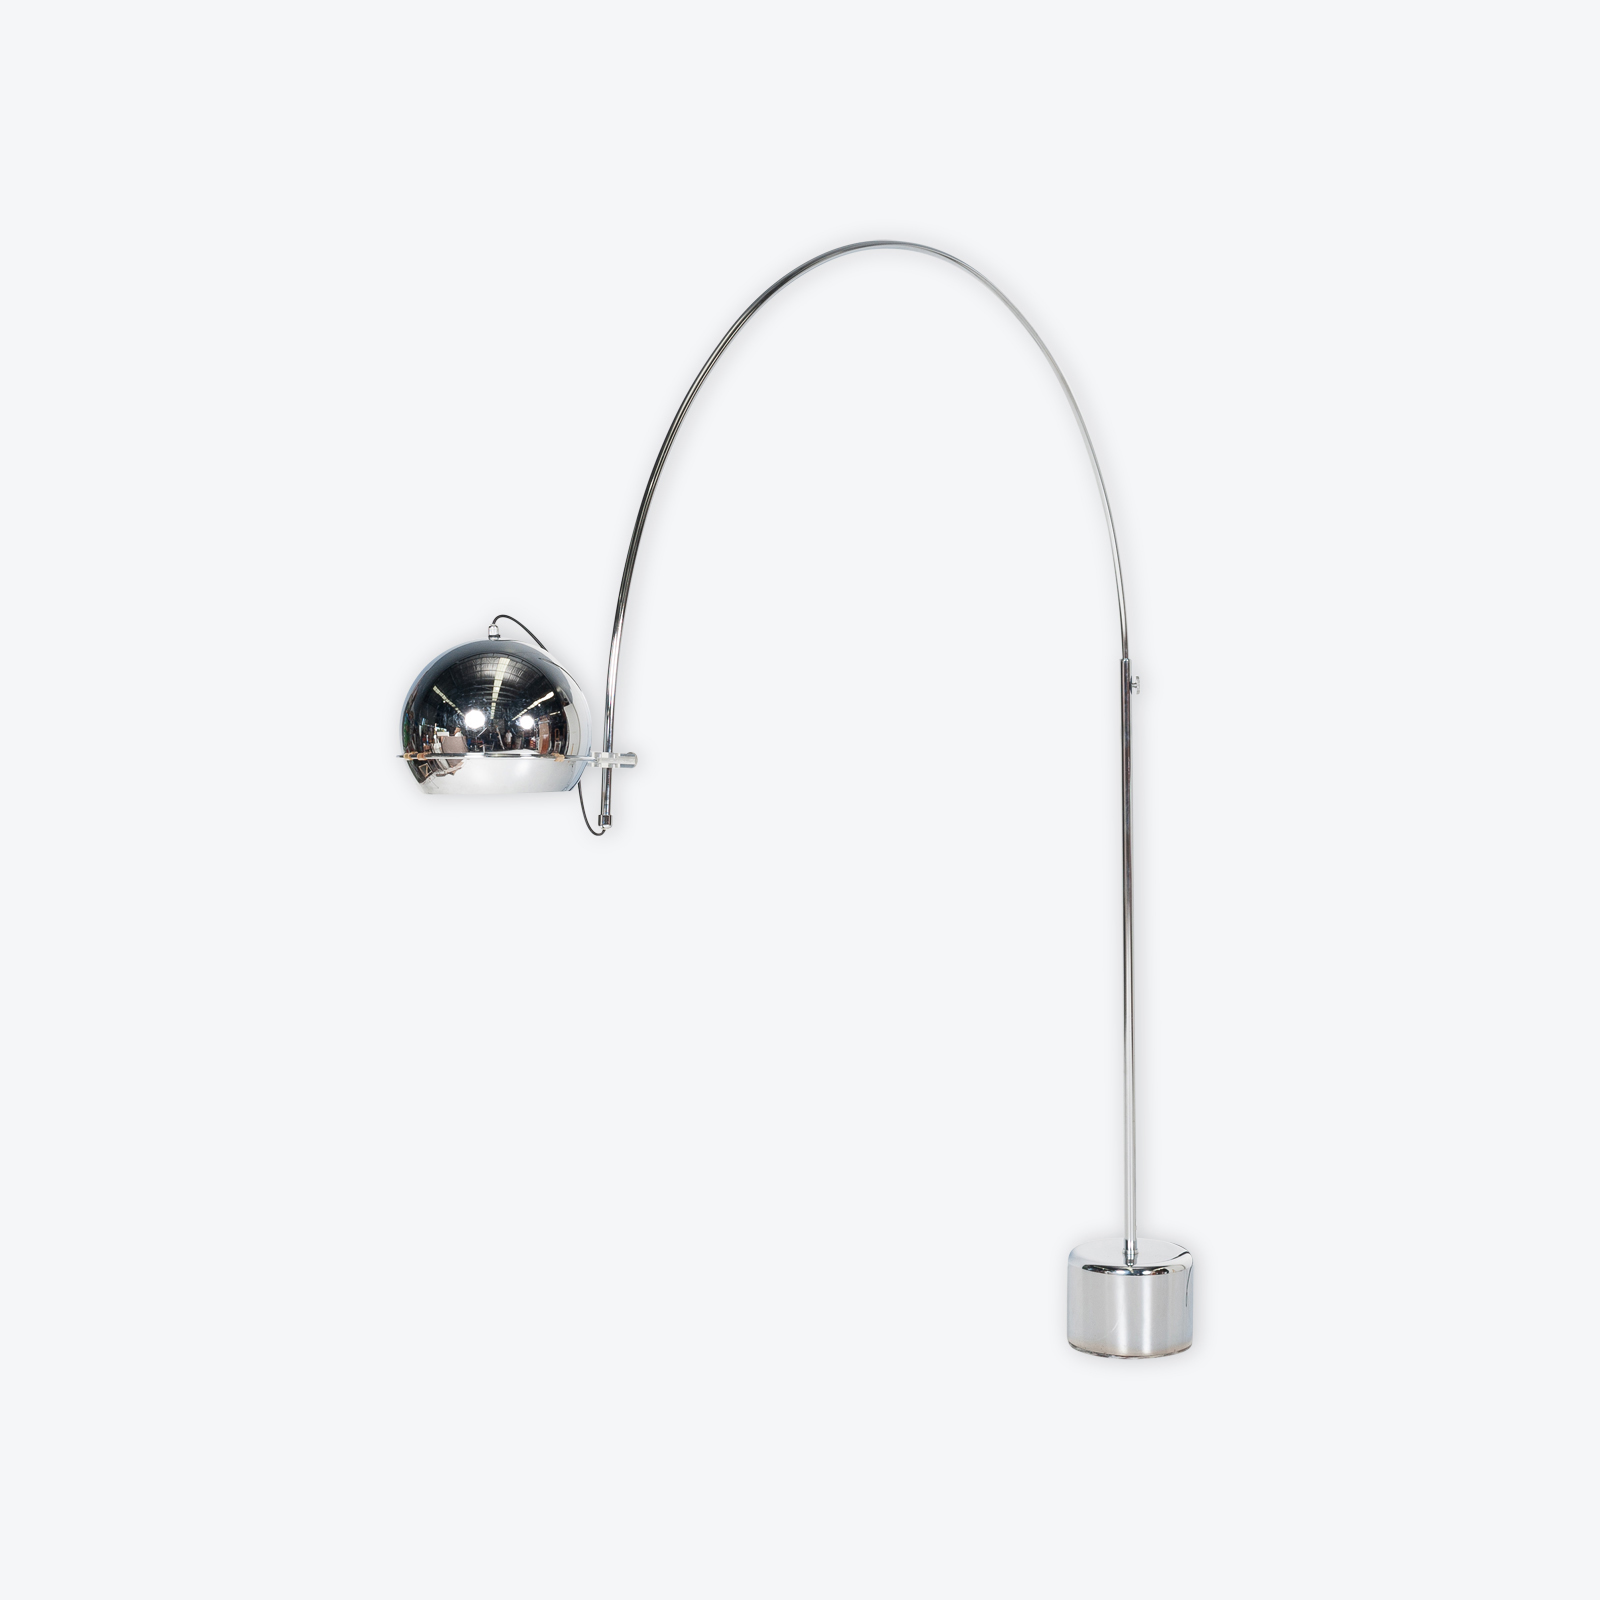 Arc Lamp By Gepo, 1950s, The Netherlands Hero